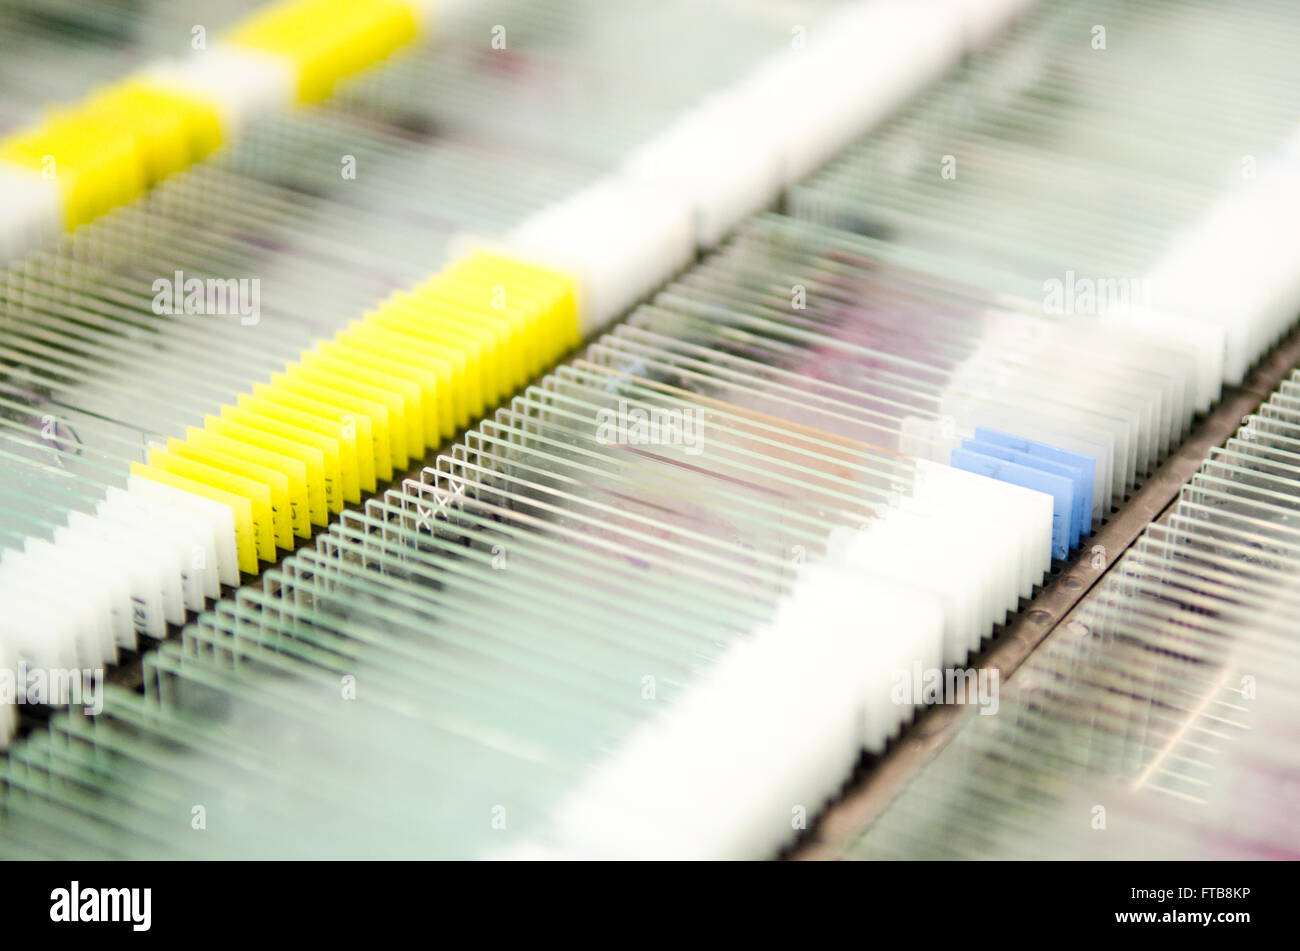 Racks of glass microscope slides containing patient or research test samples from a hospital pathology laboratory. - Stock Image